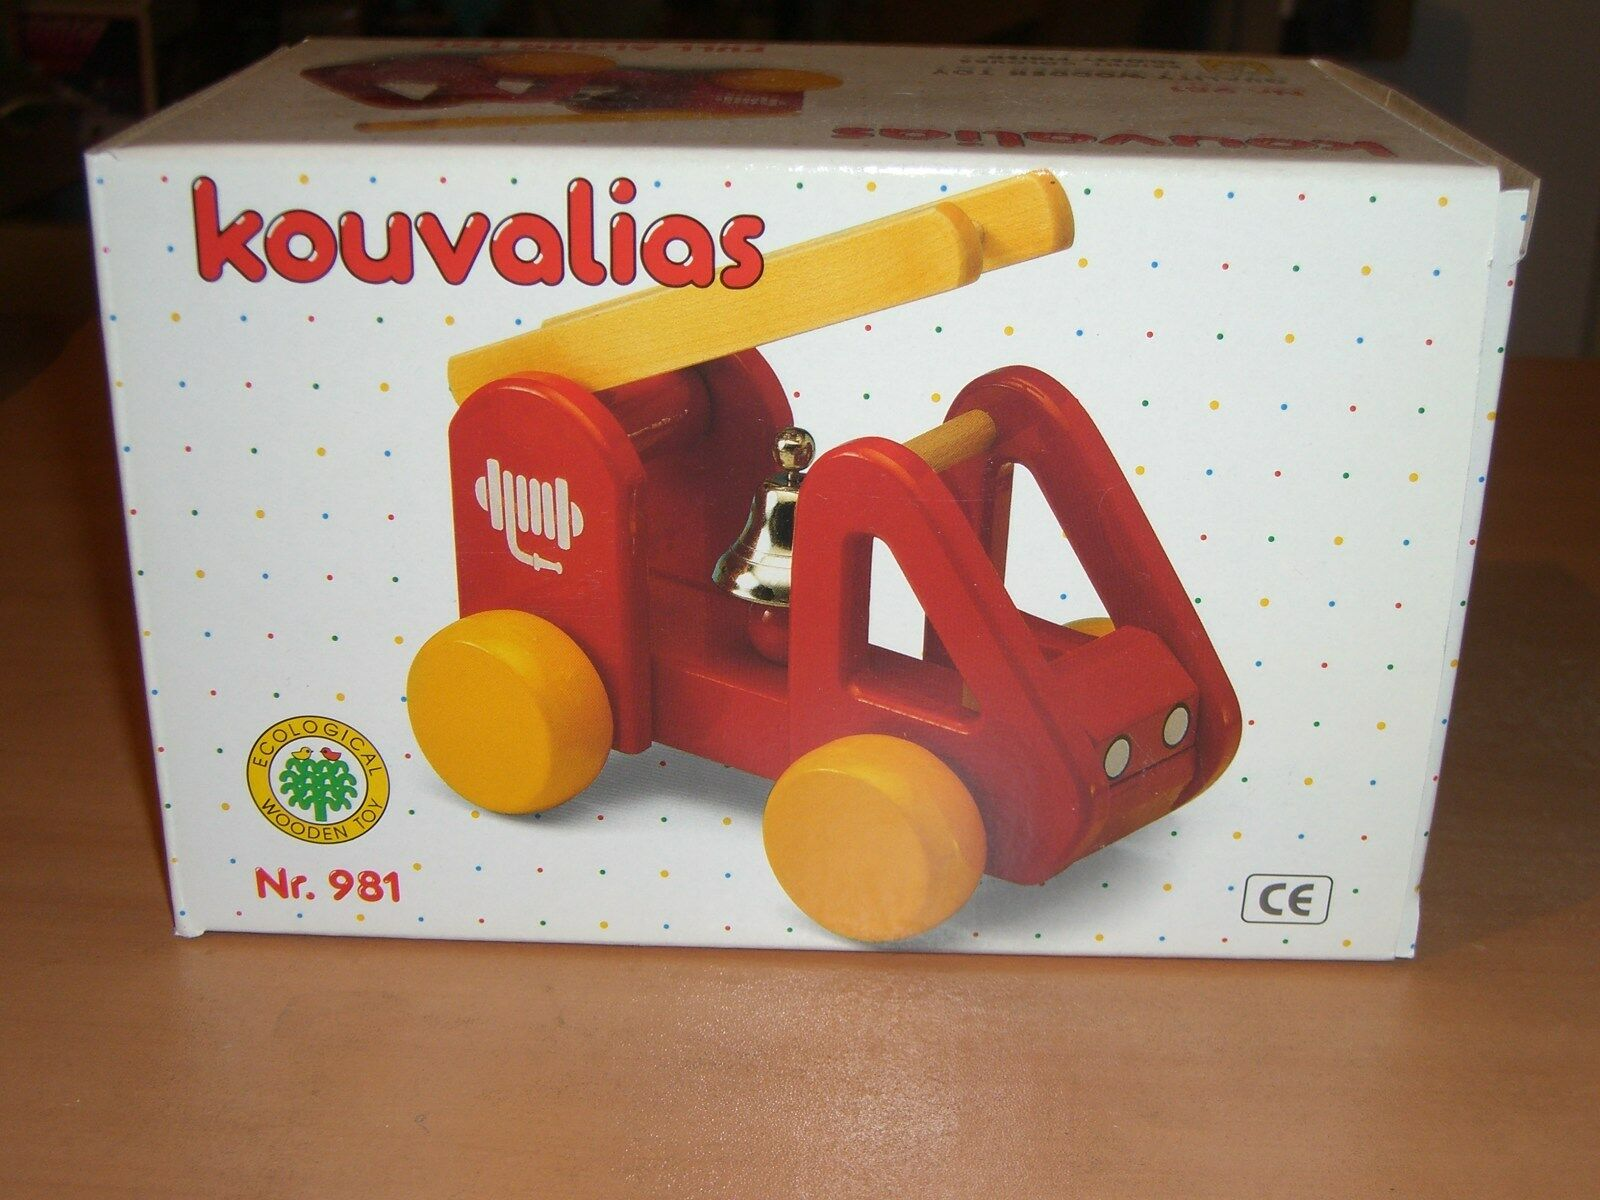 VINTAGE WOODEN FIRE ENGINE GREEK PULL TOY KOUVALIAS No 981 MINT MIB